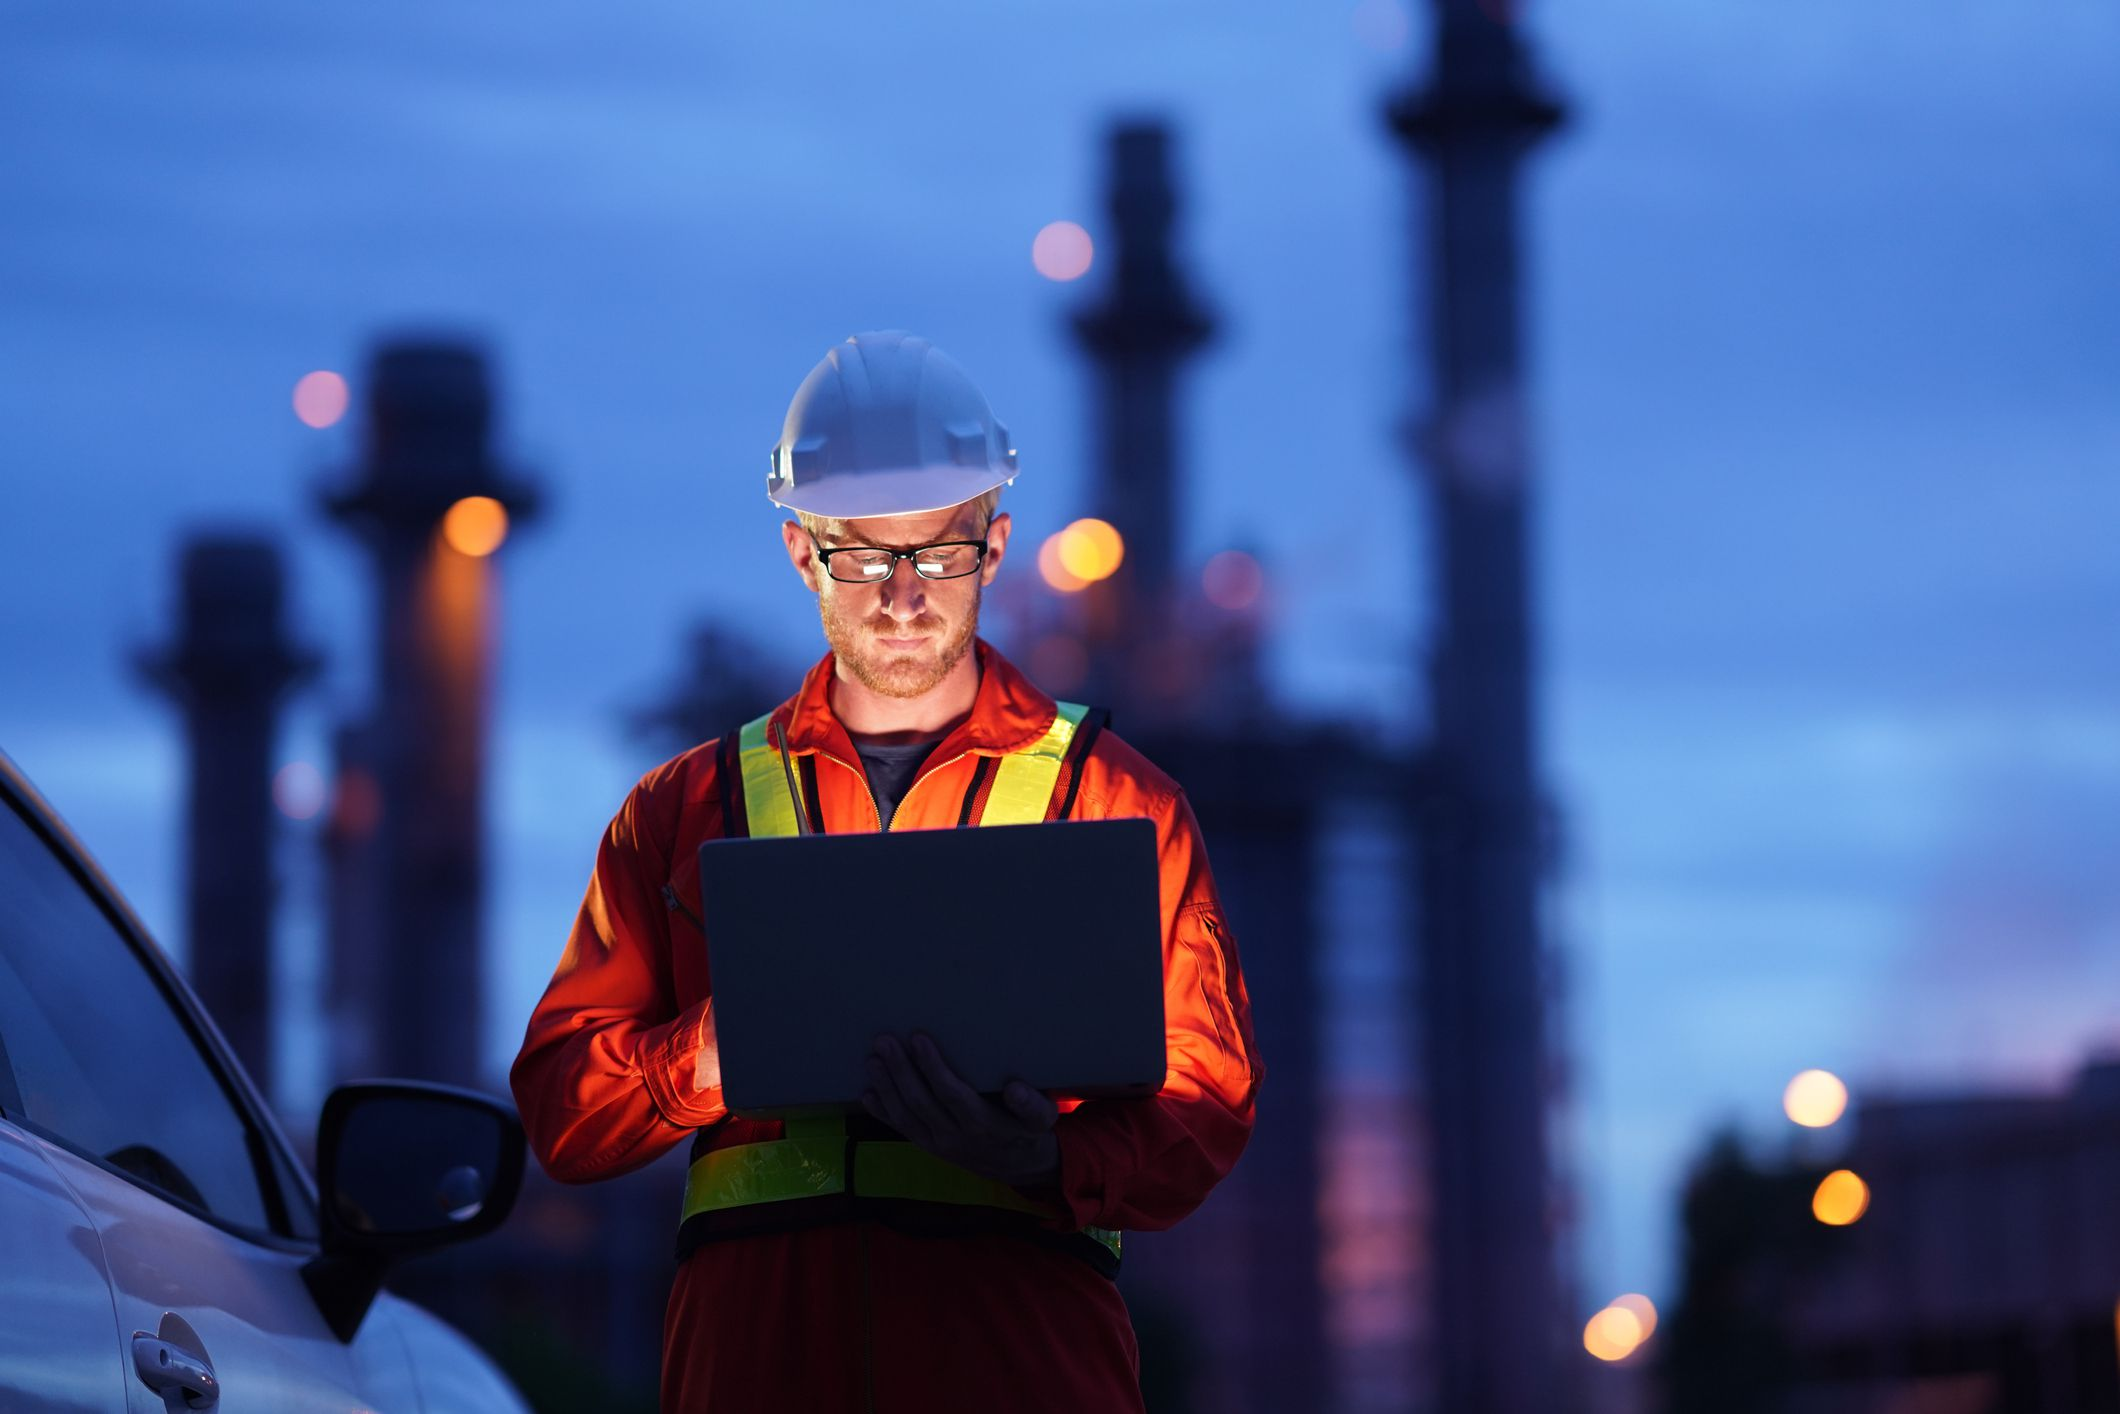 A construction worker using a laptop outside at dusk with a factory in the background.